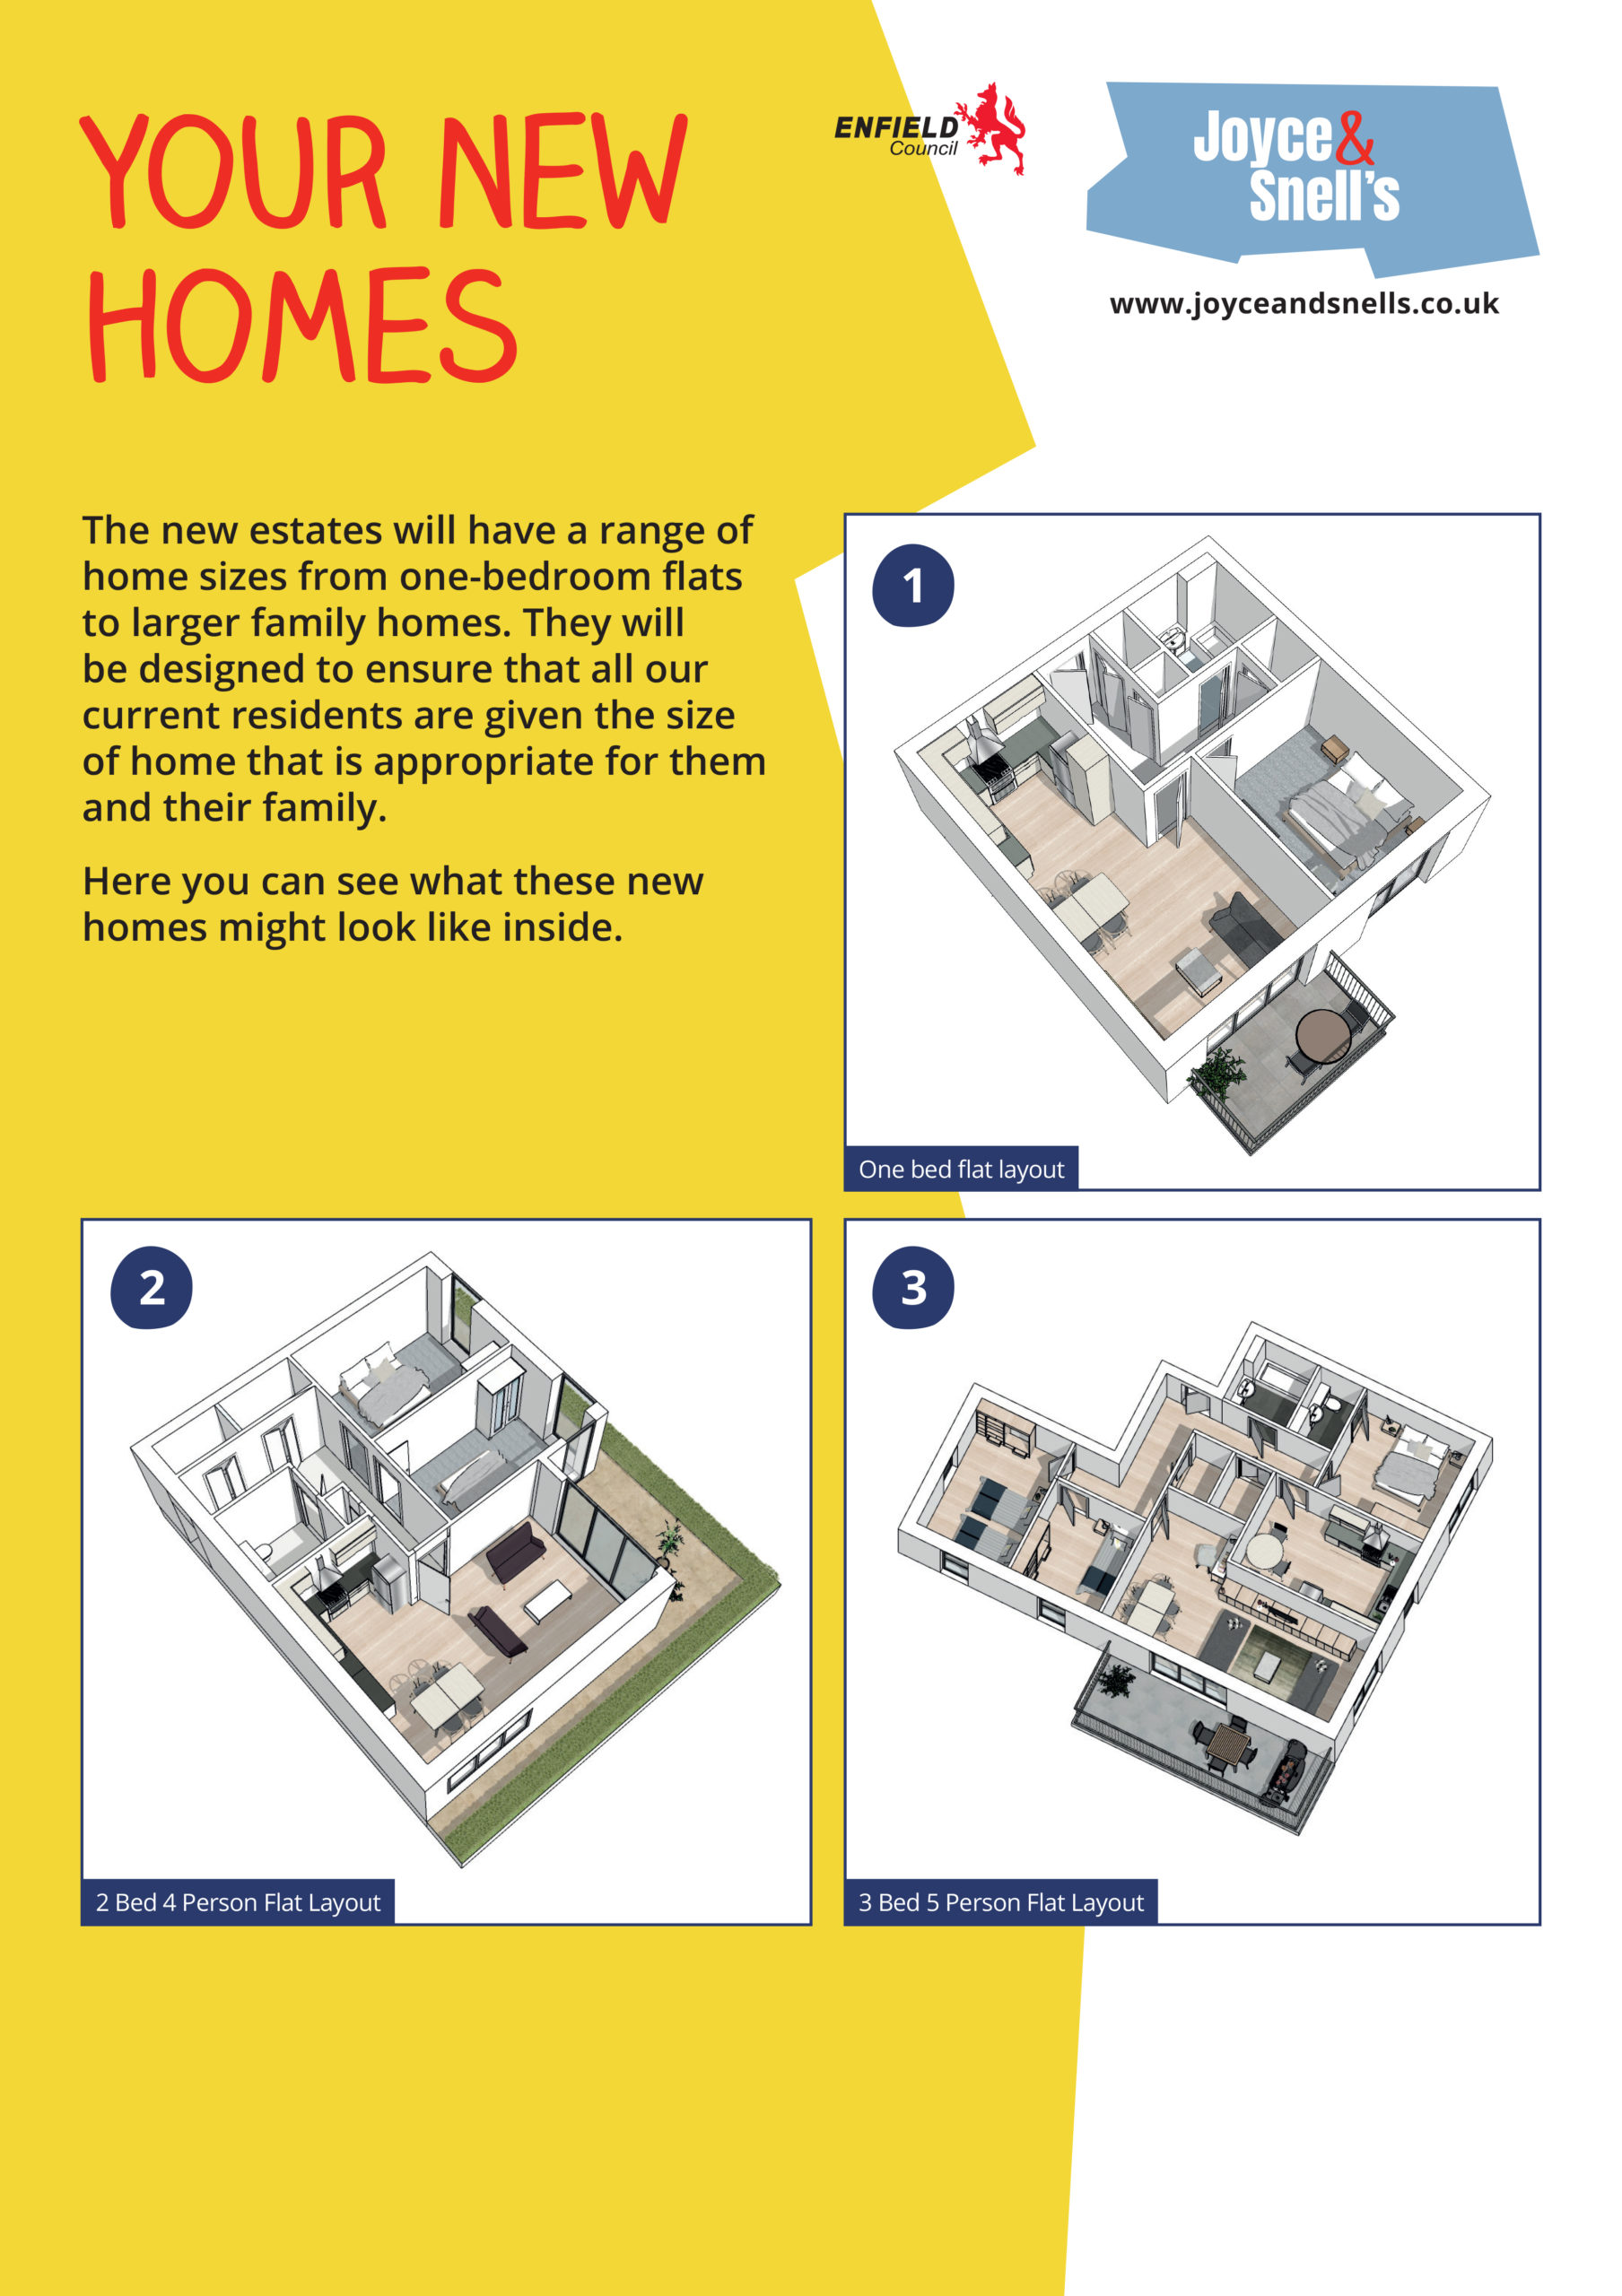 Joyce & Snells Exhibition Board 5 - Your new homes